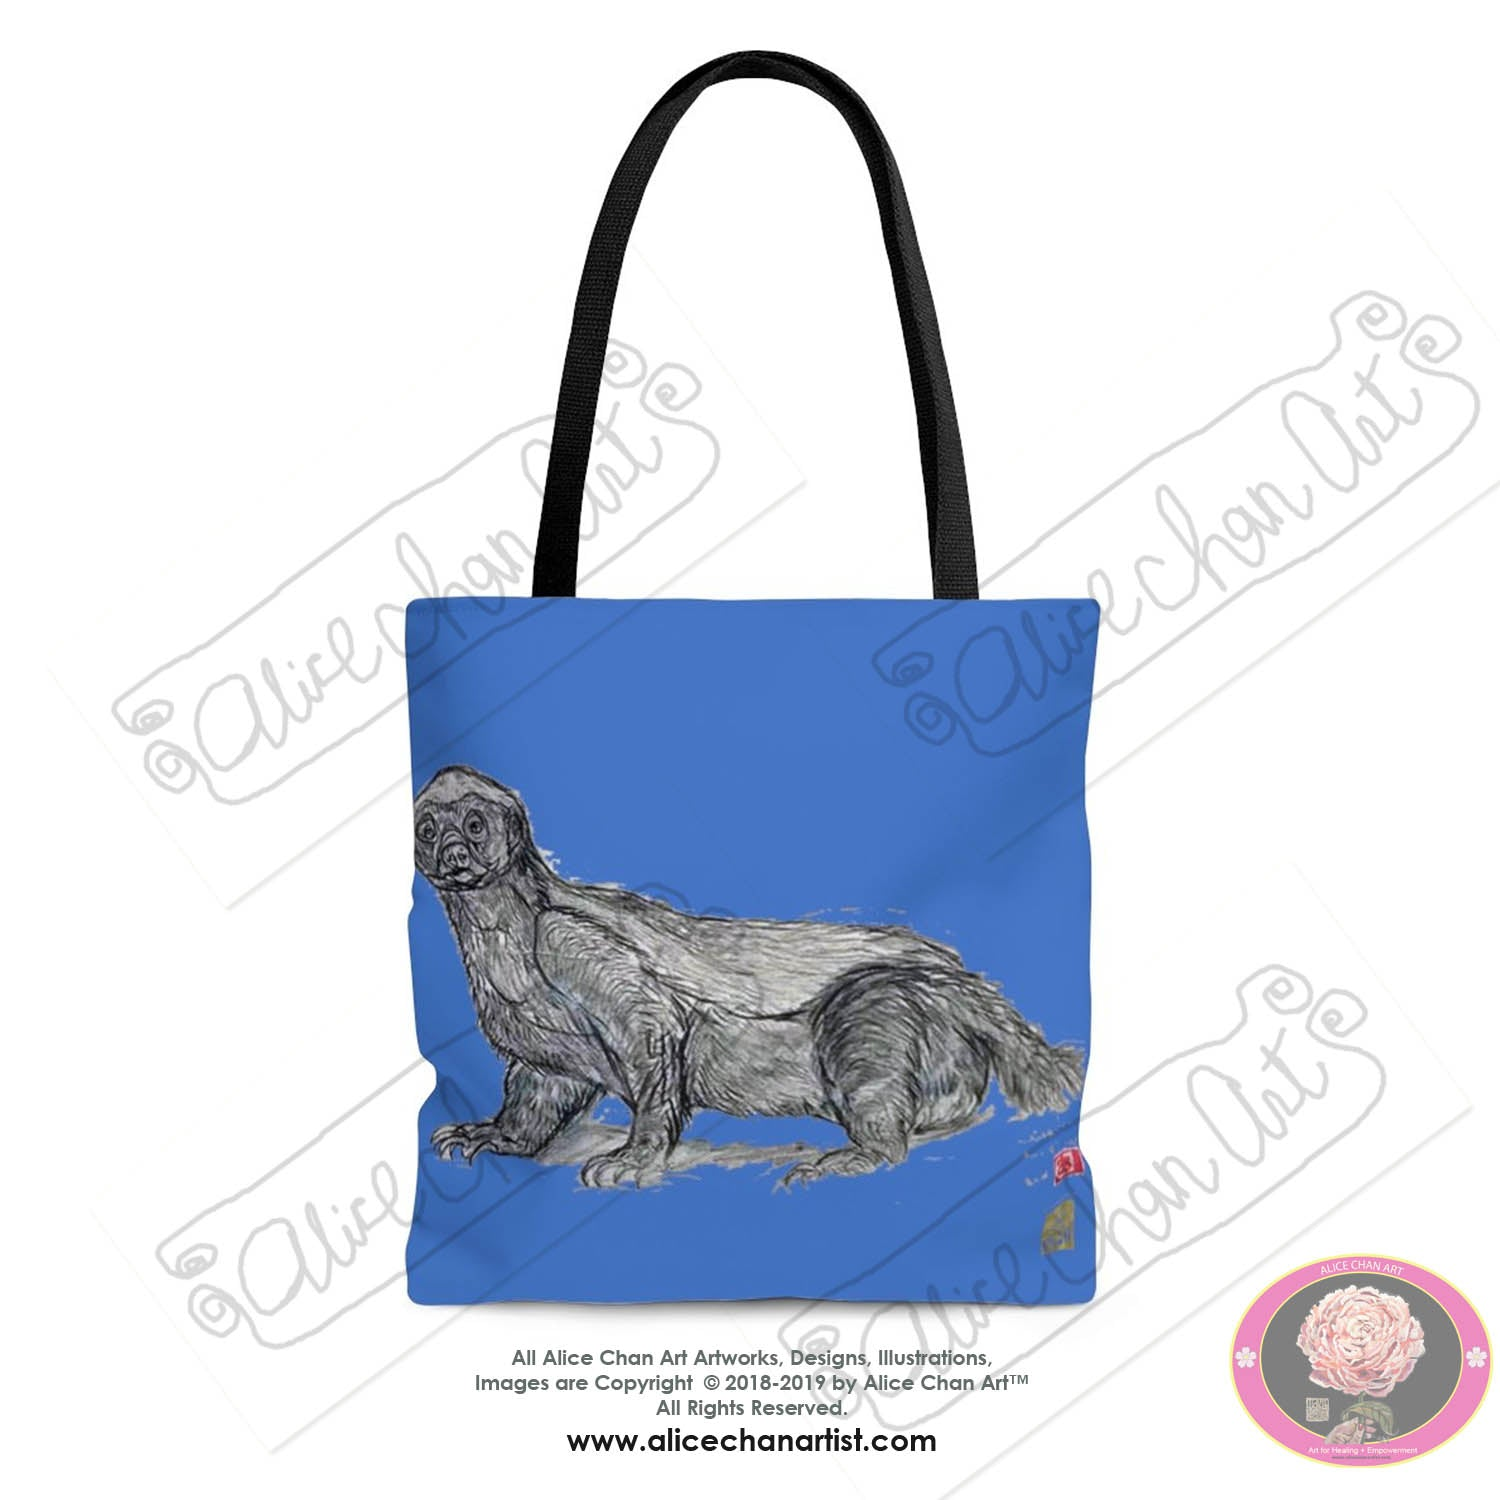 Baby Blue Honey Badger Animal Art Square Tote Bag - Made in USA (Size: S,M,L) - alicechanart